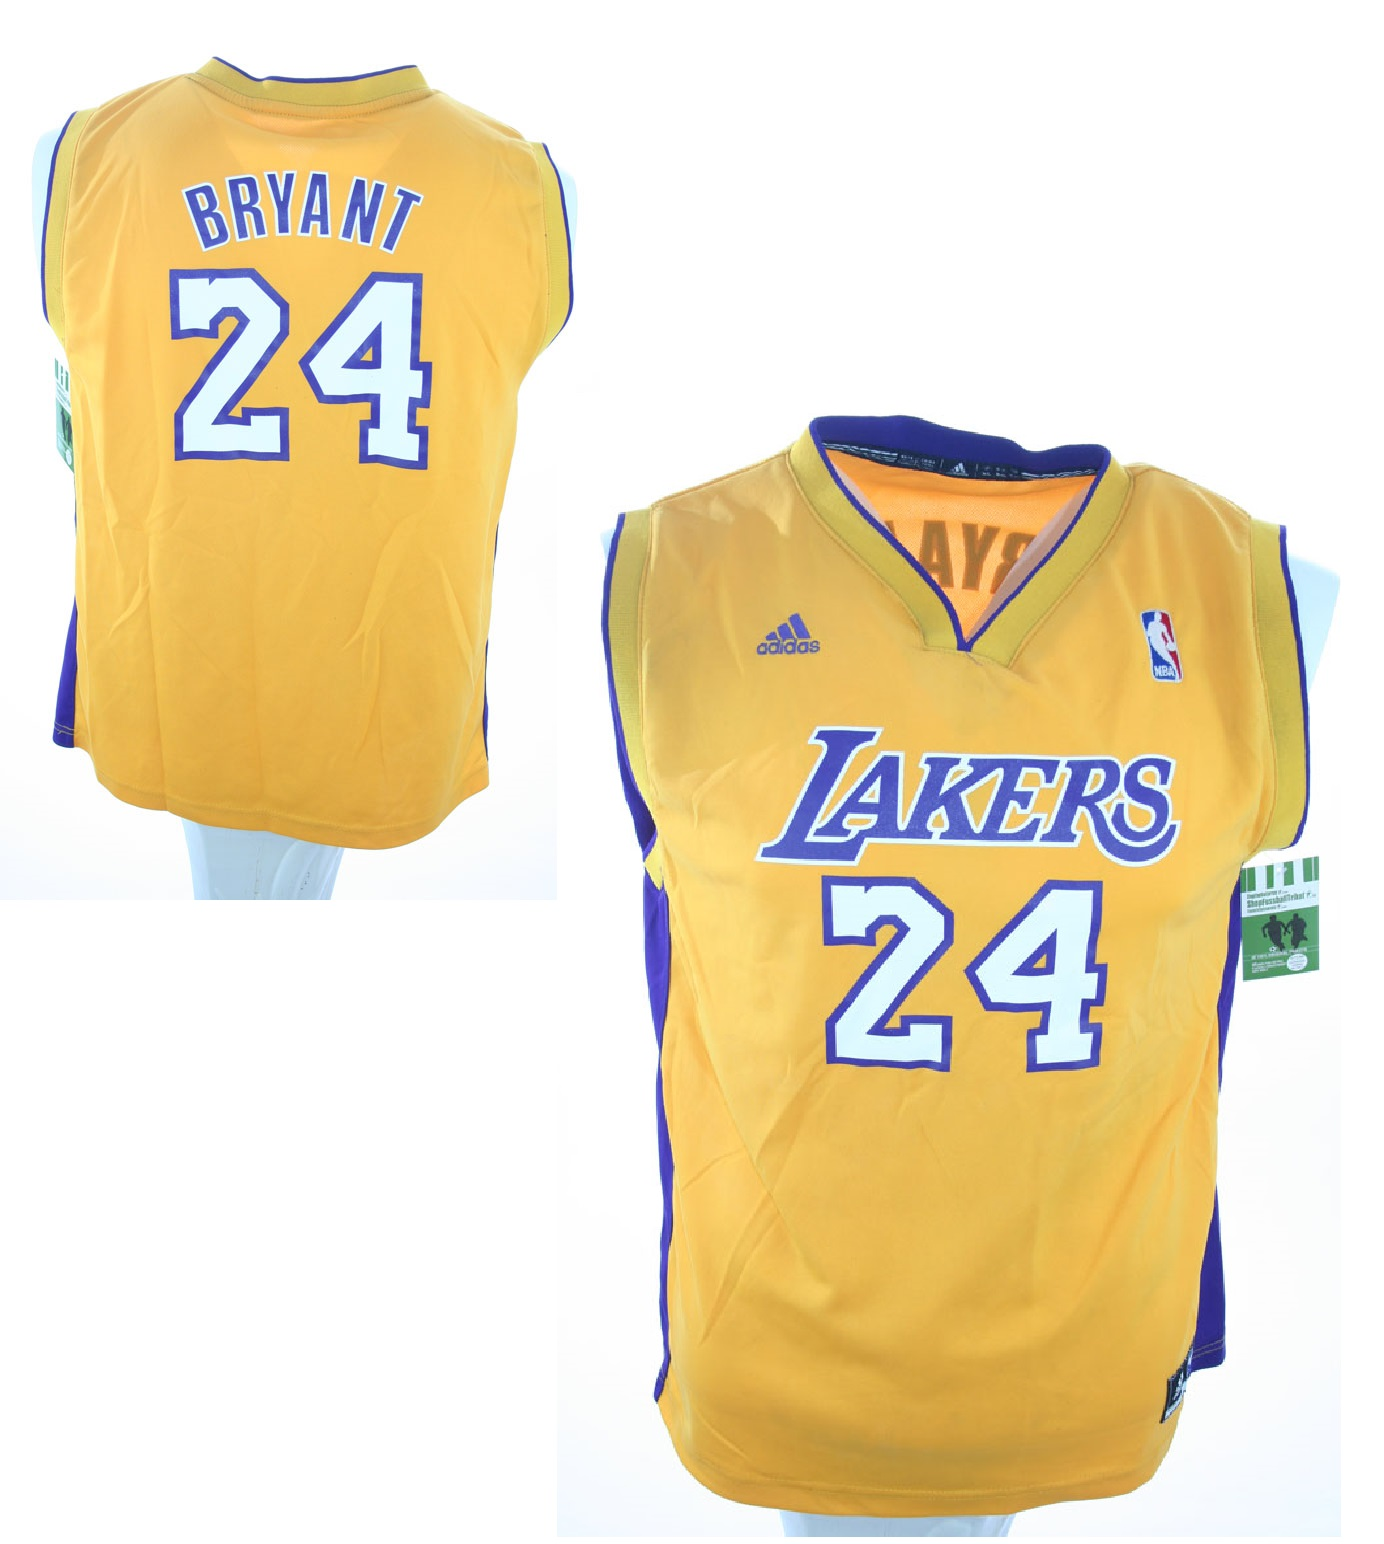 new product 37237 a0f90 Adidas Los Angeles L.A. Lakers Jersey 24 Kobe Bryant Home ...